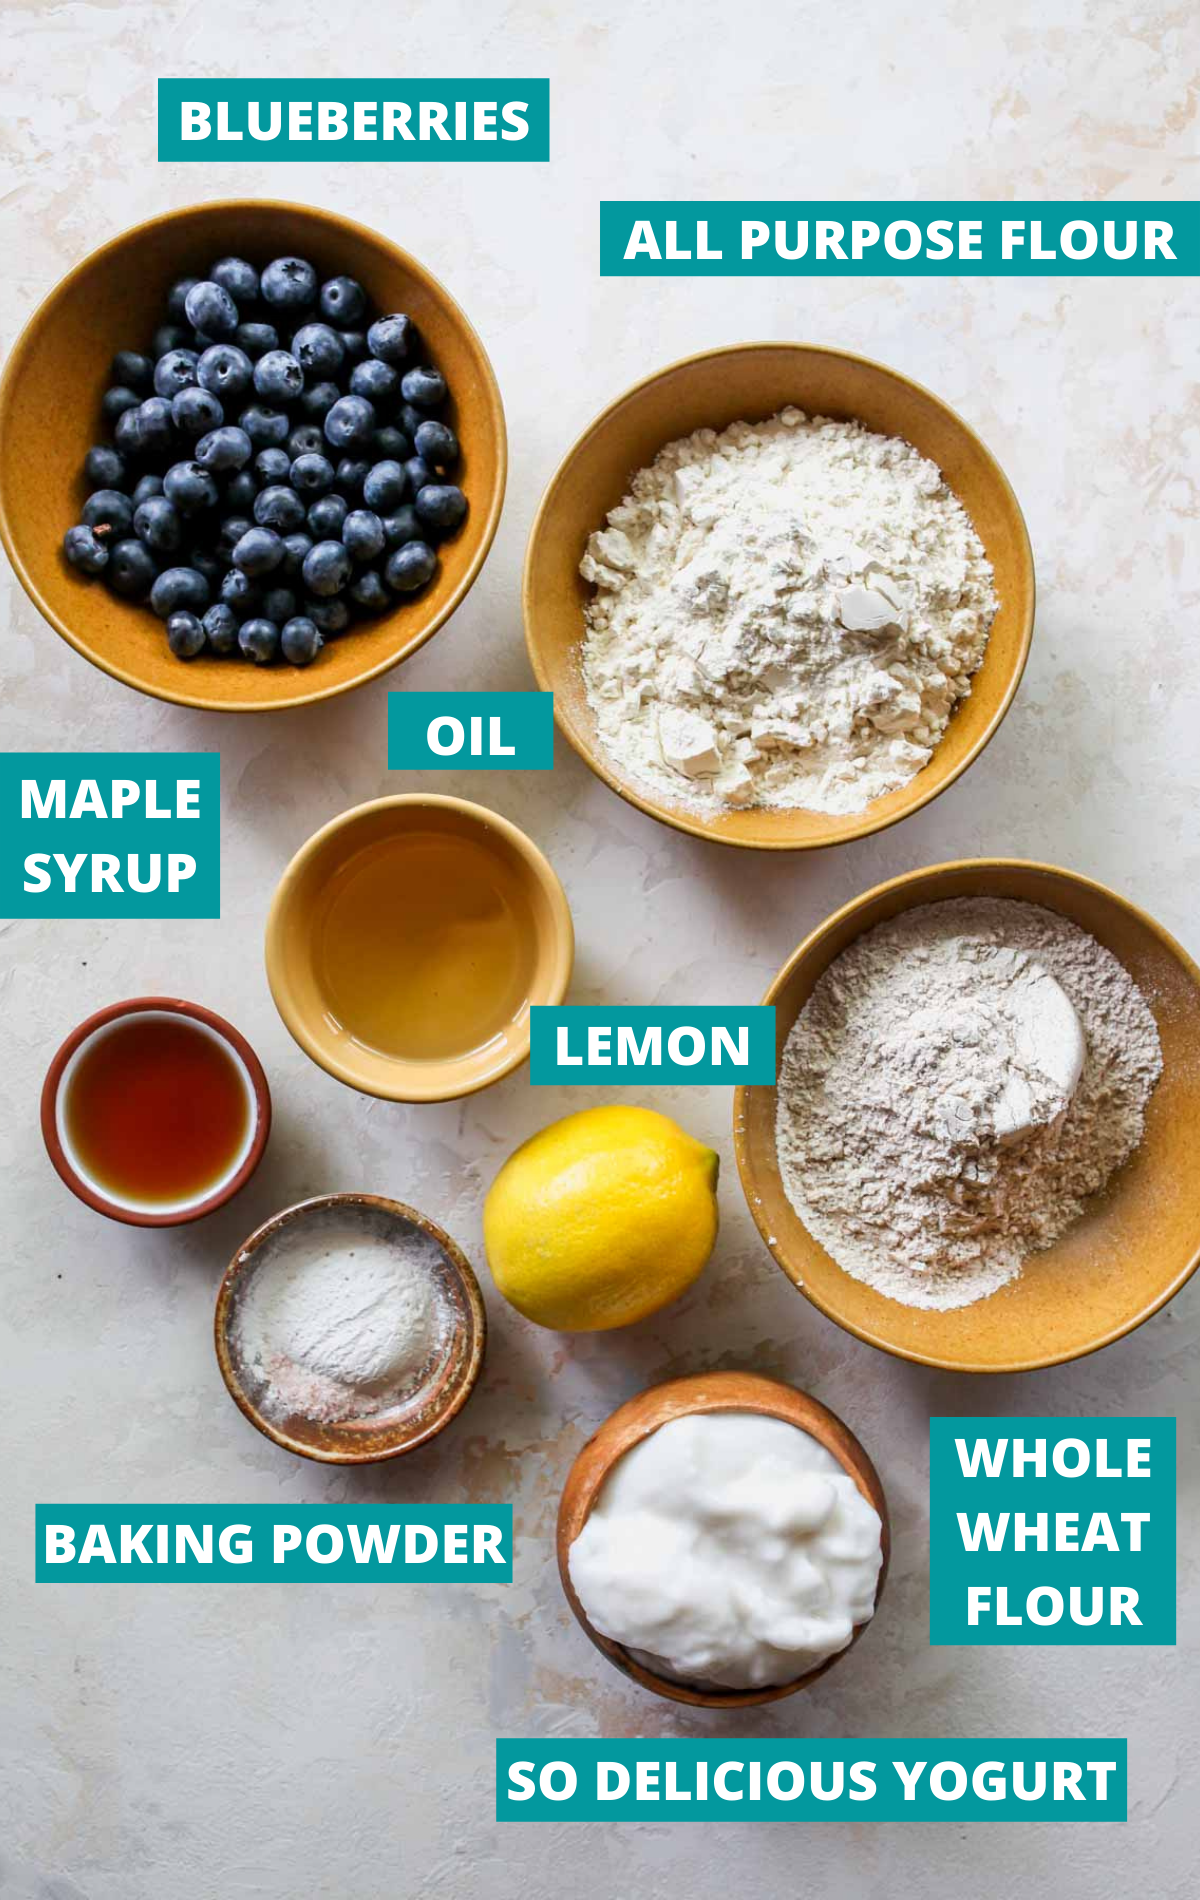 Recipe ingredients laid out in separate bowls with blue labels